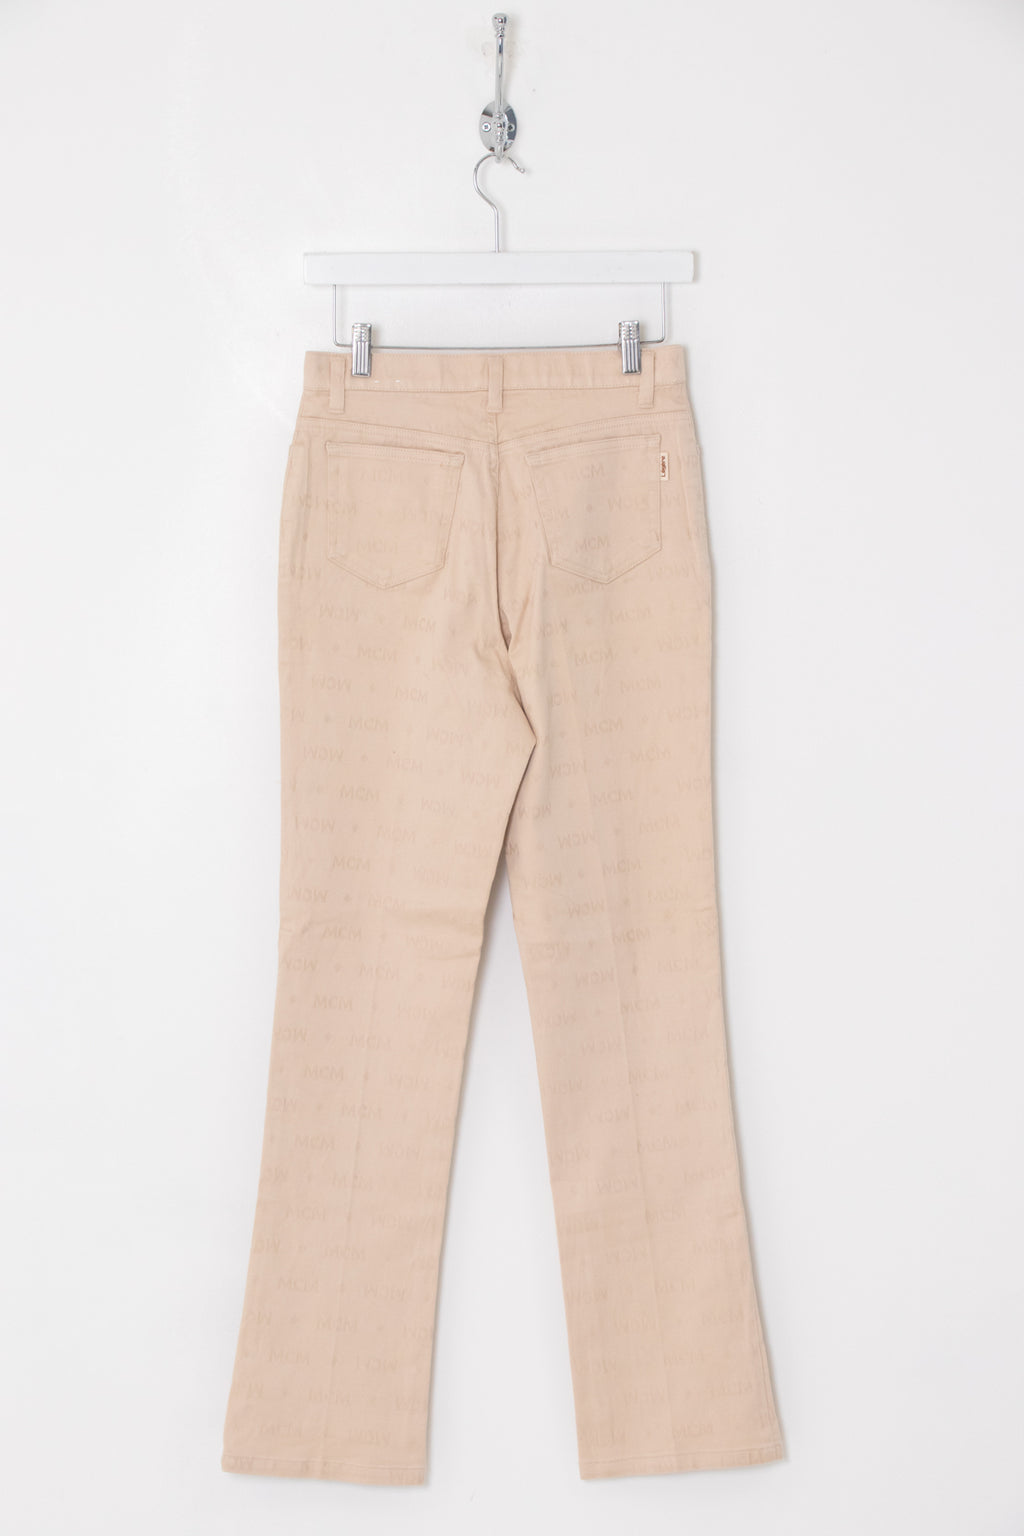 "Women's MCM Monogram Trousers (26"")"